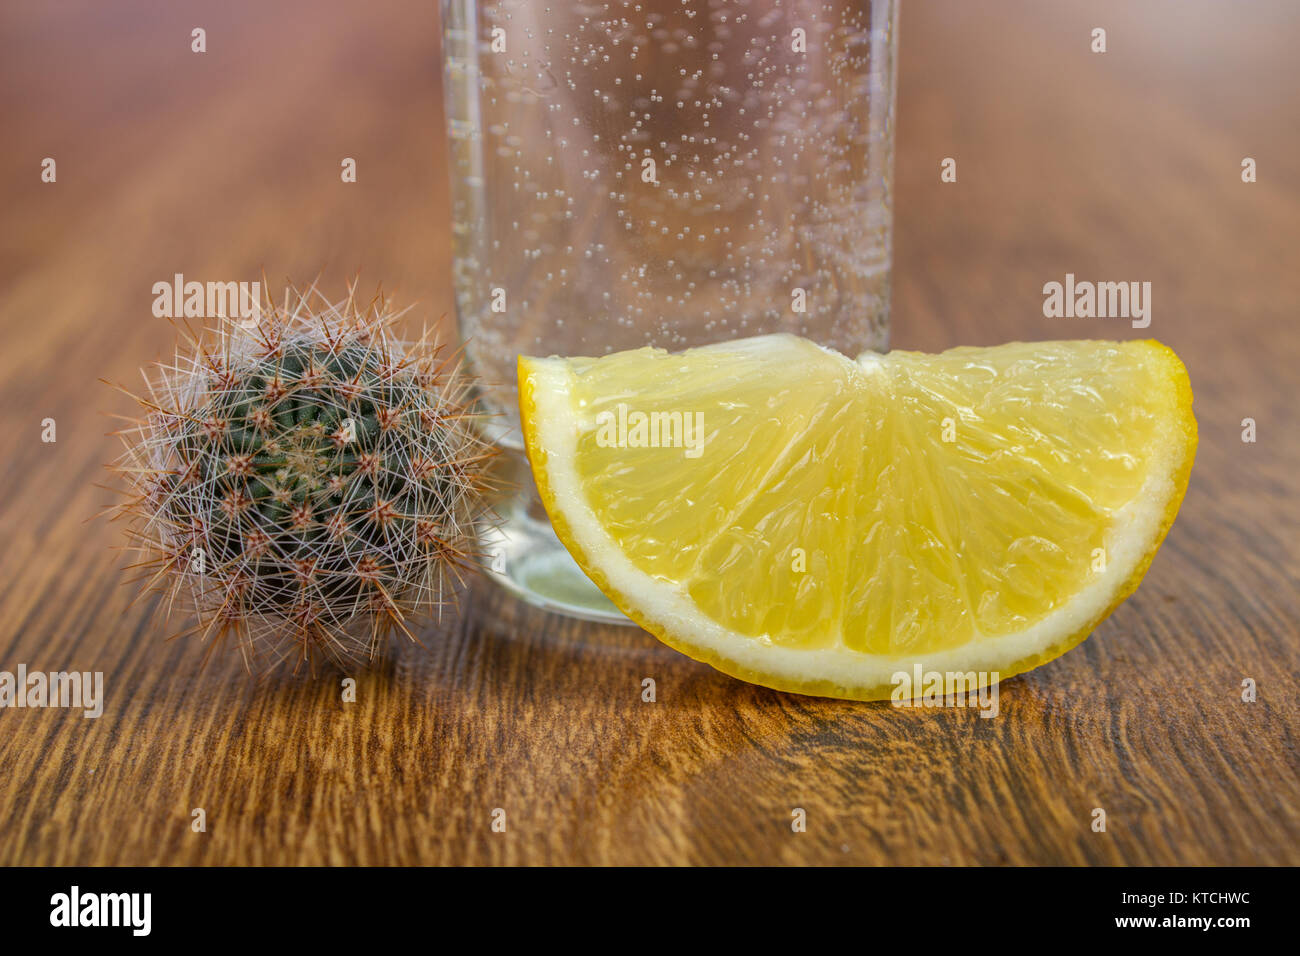 how to drink vodka shots with lemon and salt